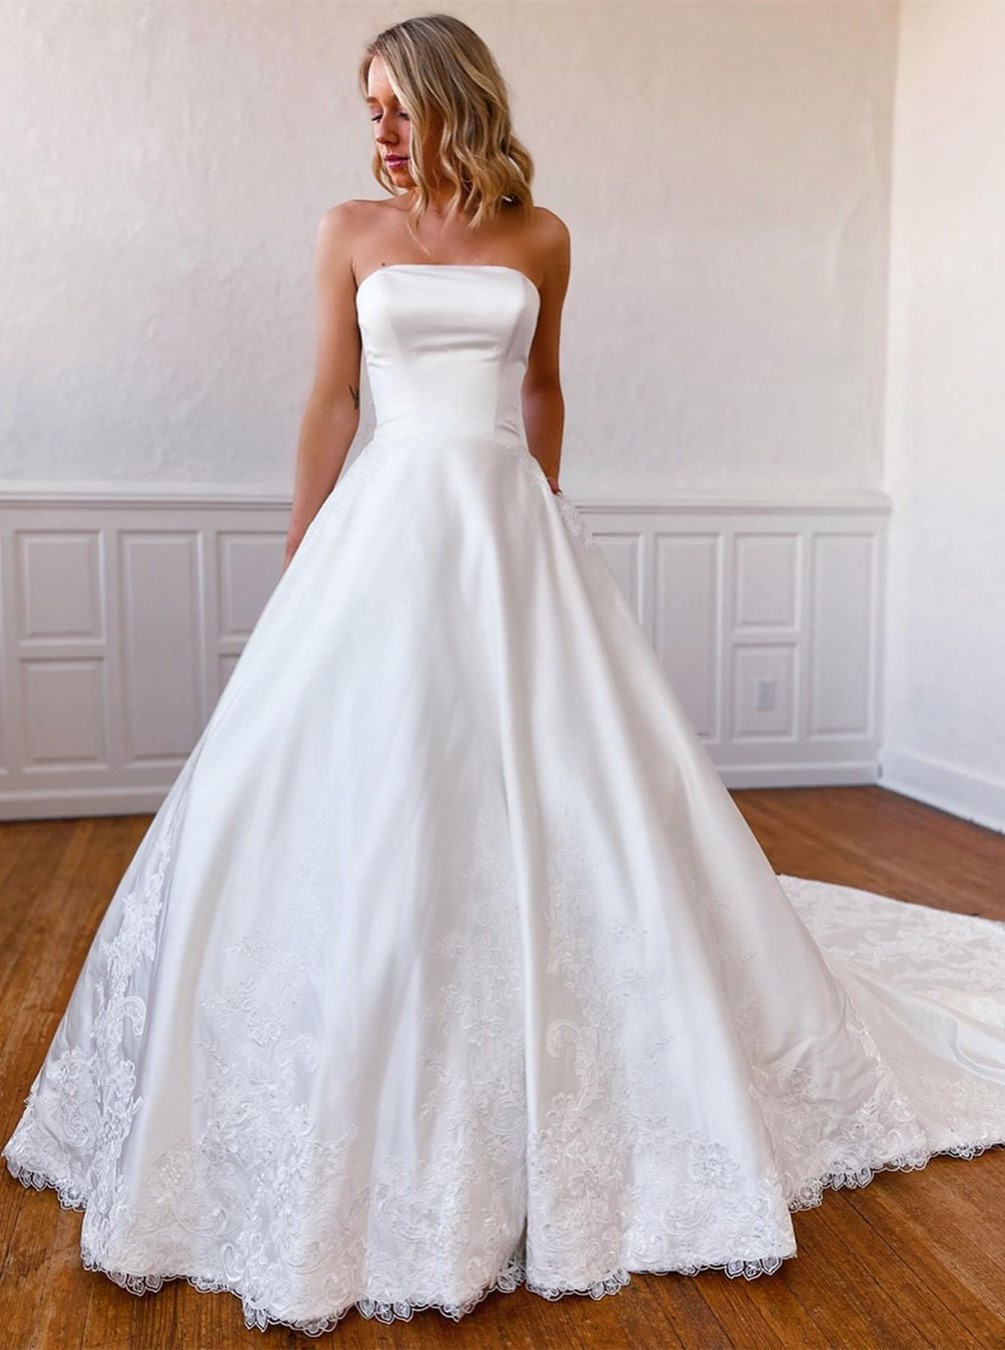 Elegant Strapless Sweep Train Beach Wedding Dress with Appliques Pockets